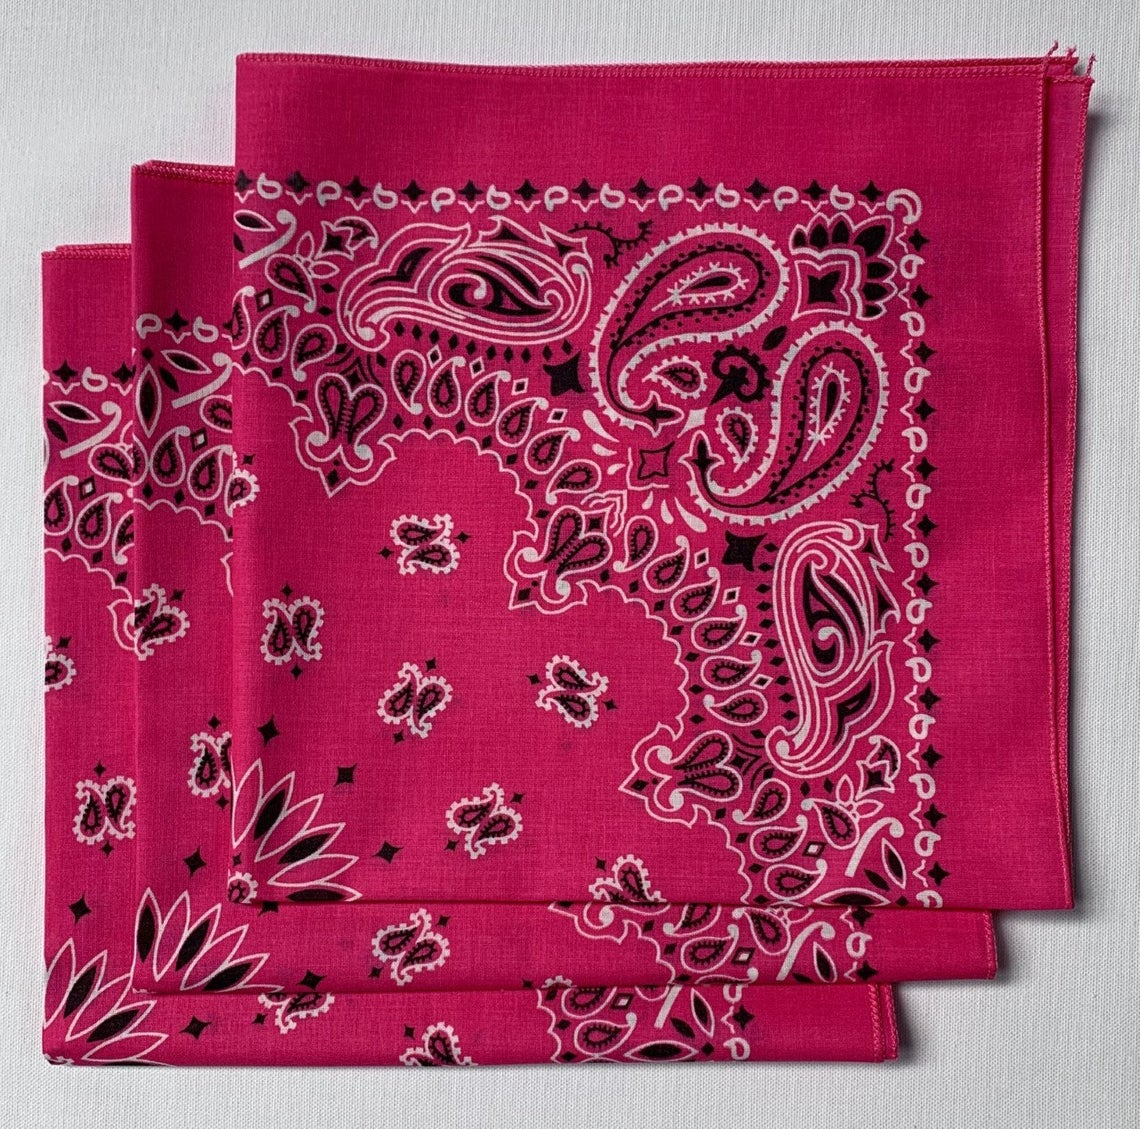 "Hot Pink Paisley Bandanas - Made In The USA (3 Pk) 22"" x 22"""